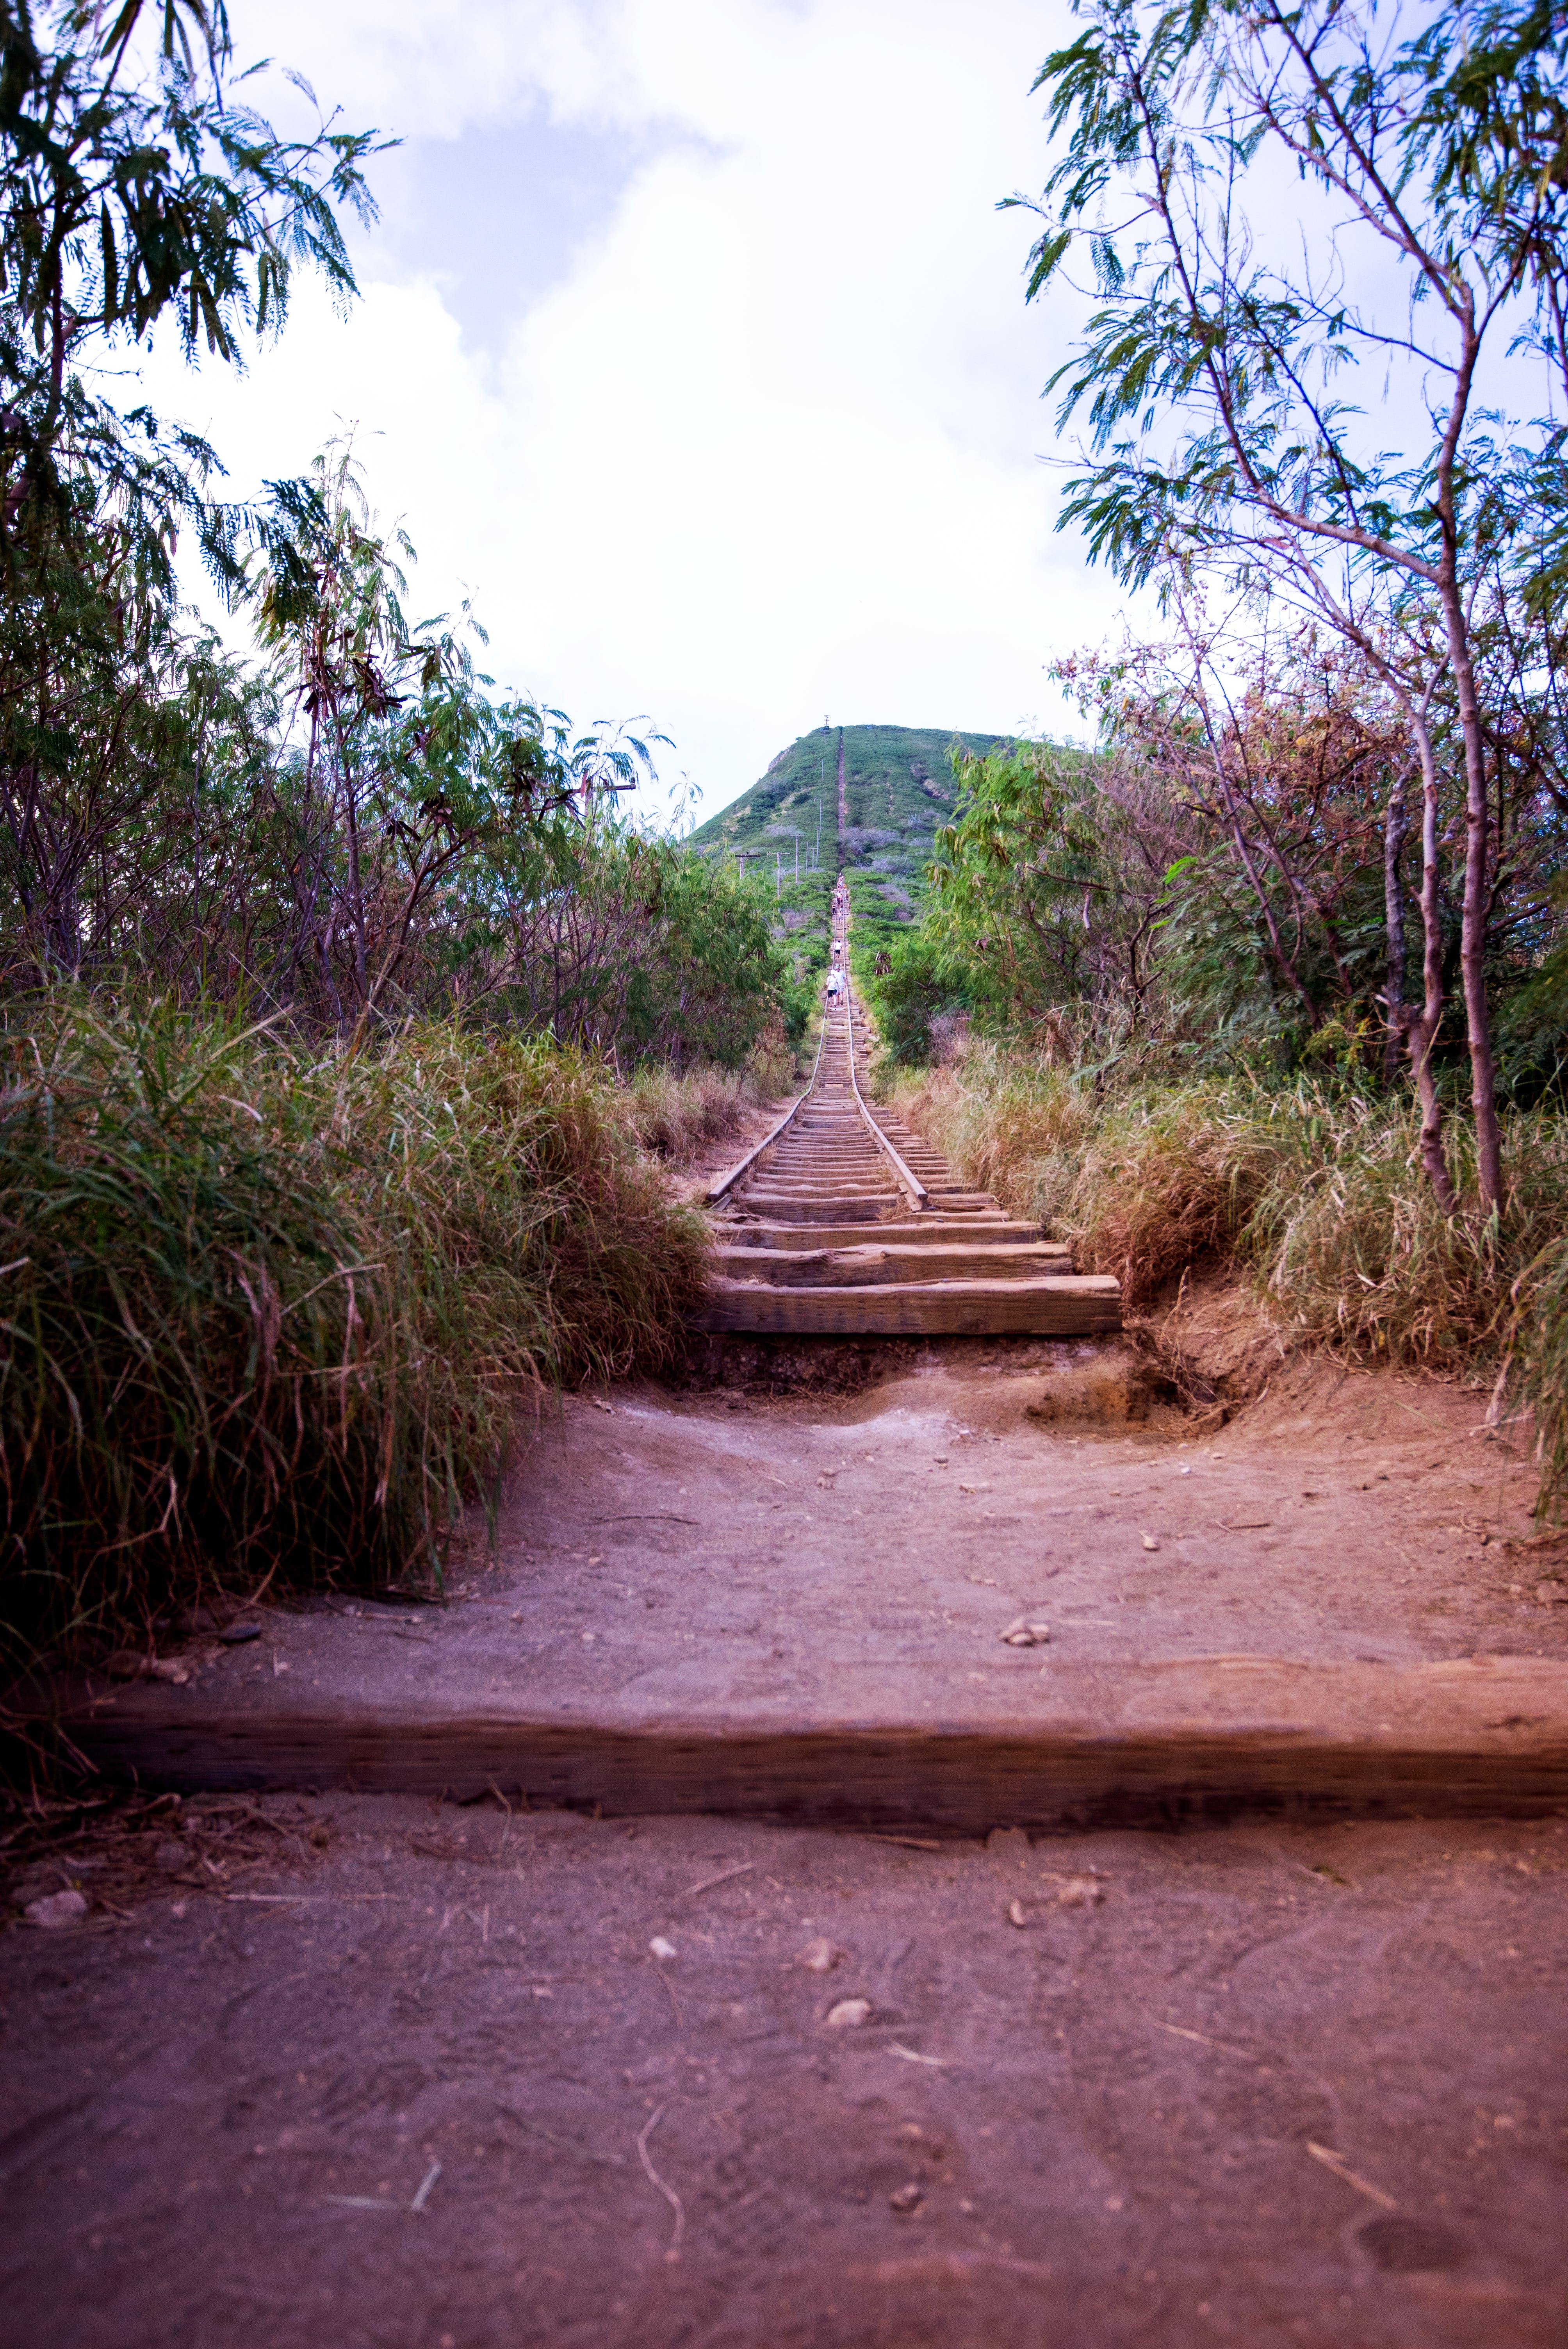 Free stock photo of mountain hiking, stairs, wooden stairs